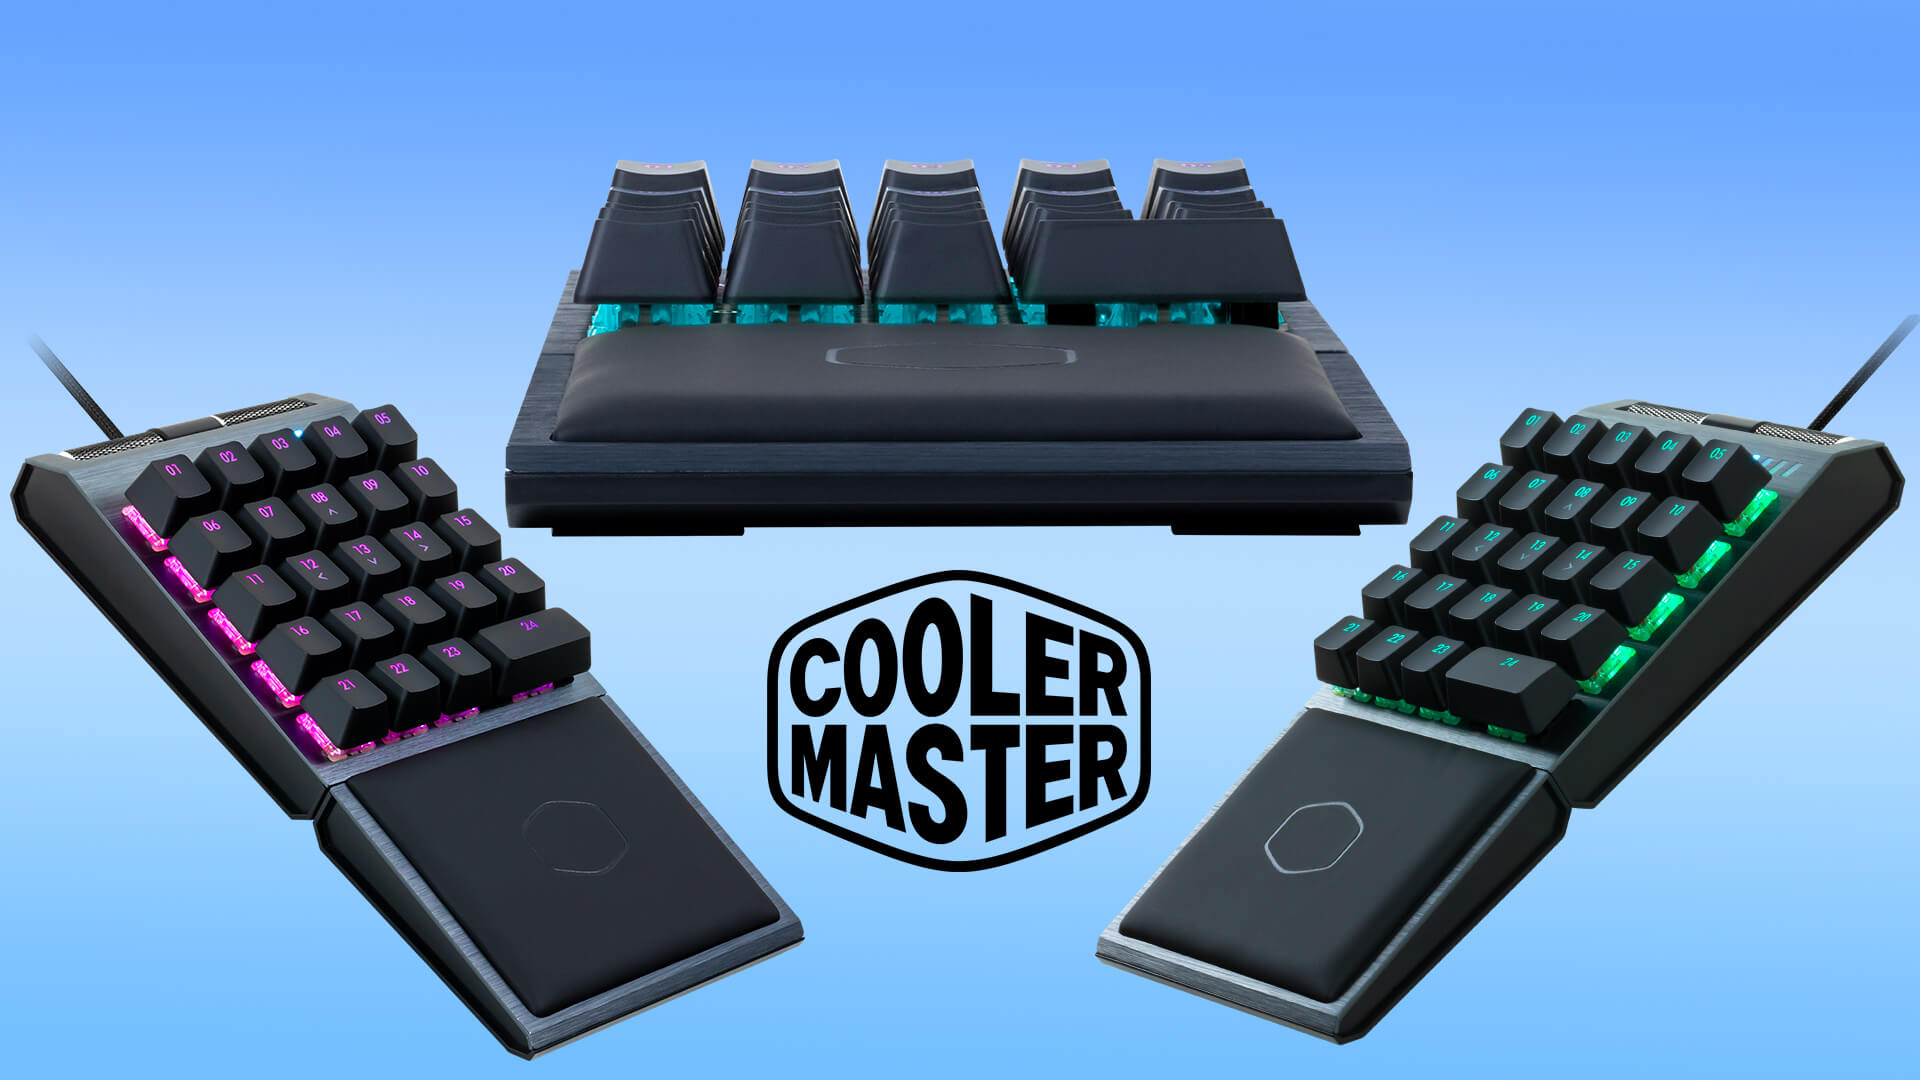 Cooler Master ControlPad Review: New Pressure-Sensitive Technology